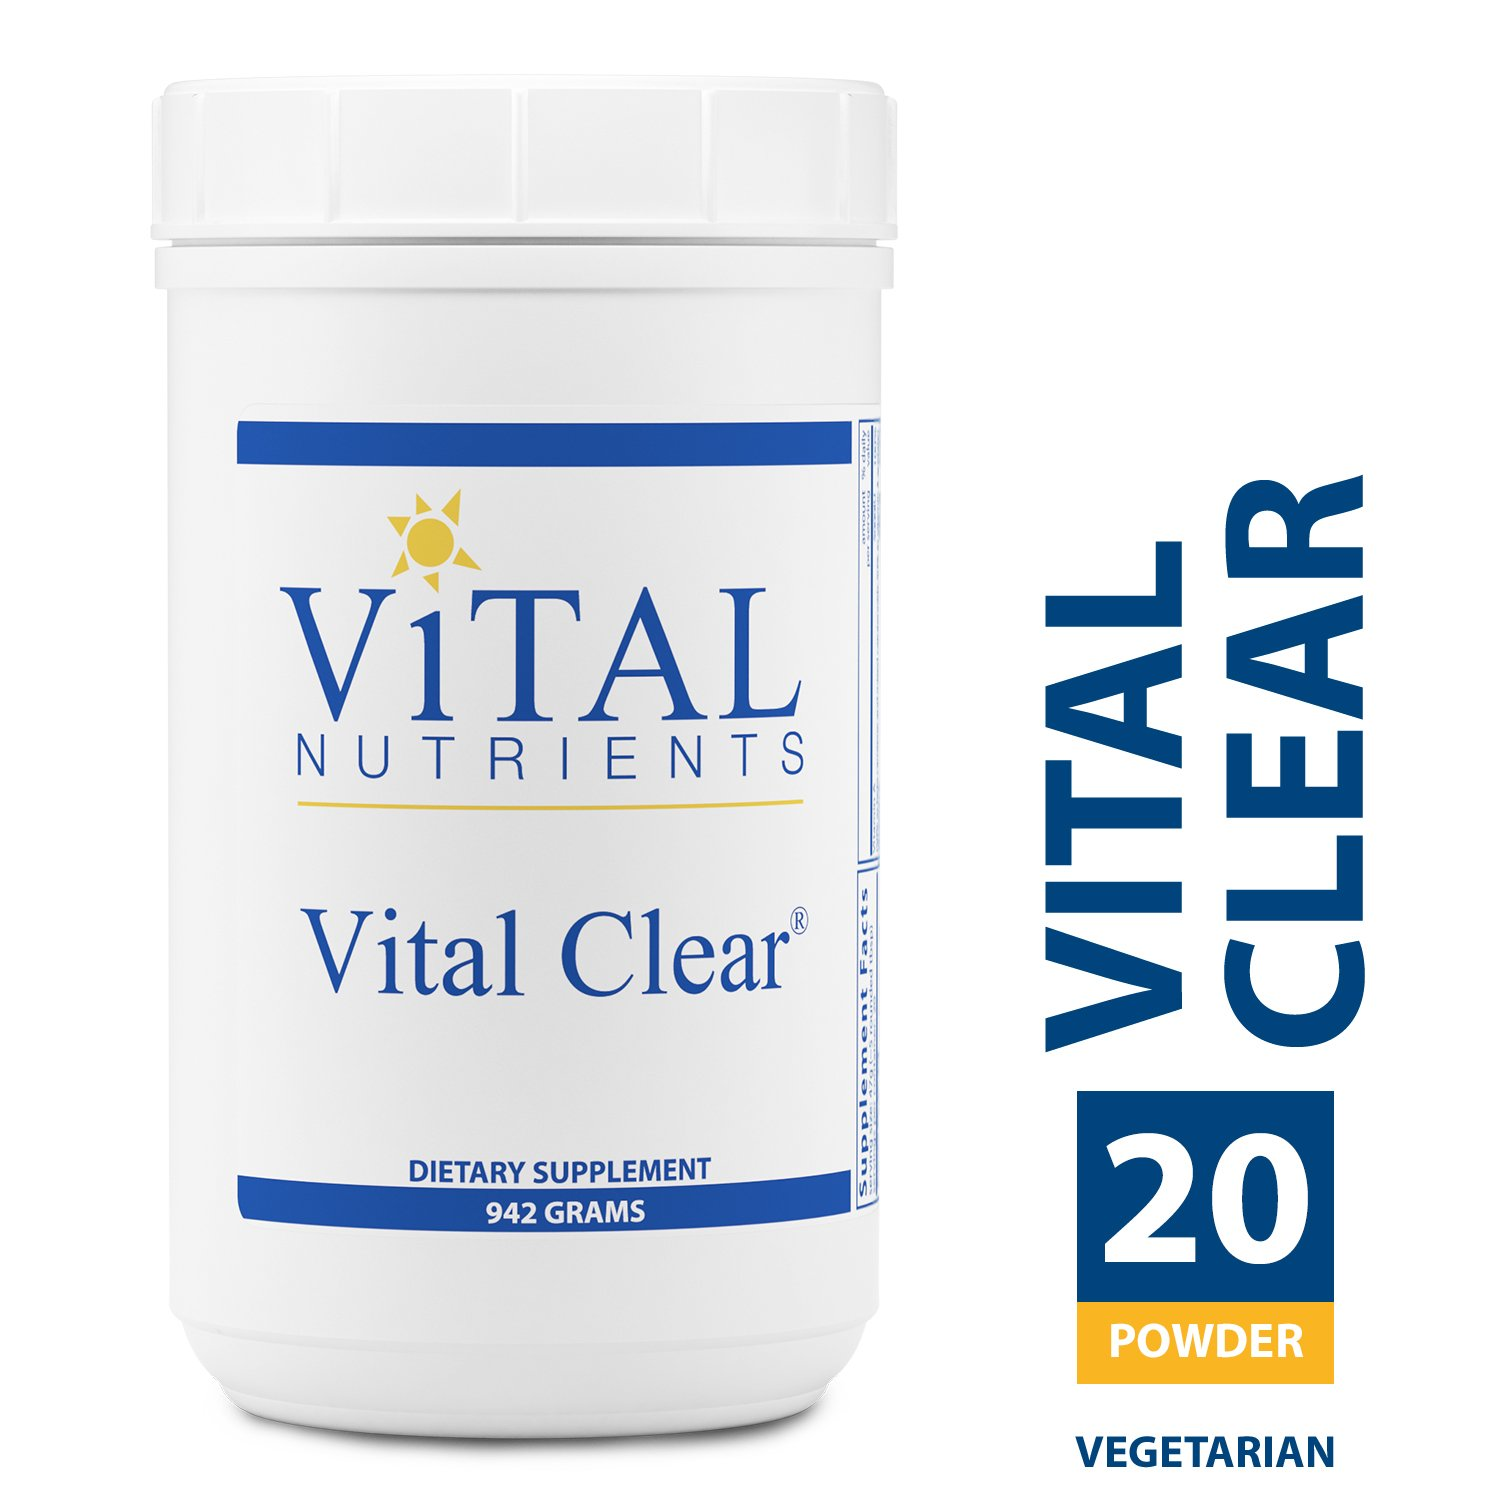 Vital Nutrients - Vital Clear - Nutritional and Herbal Support for a Healthy Inflammatory Response, Maintaining Healthy Blood Sugar Levels, and Promoting Detoxification - Vegetarian - 942 Grams